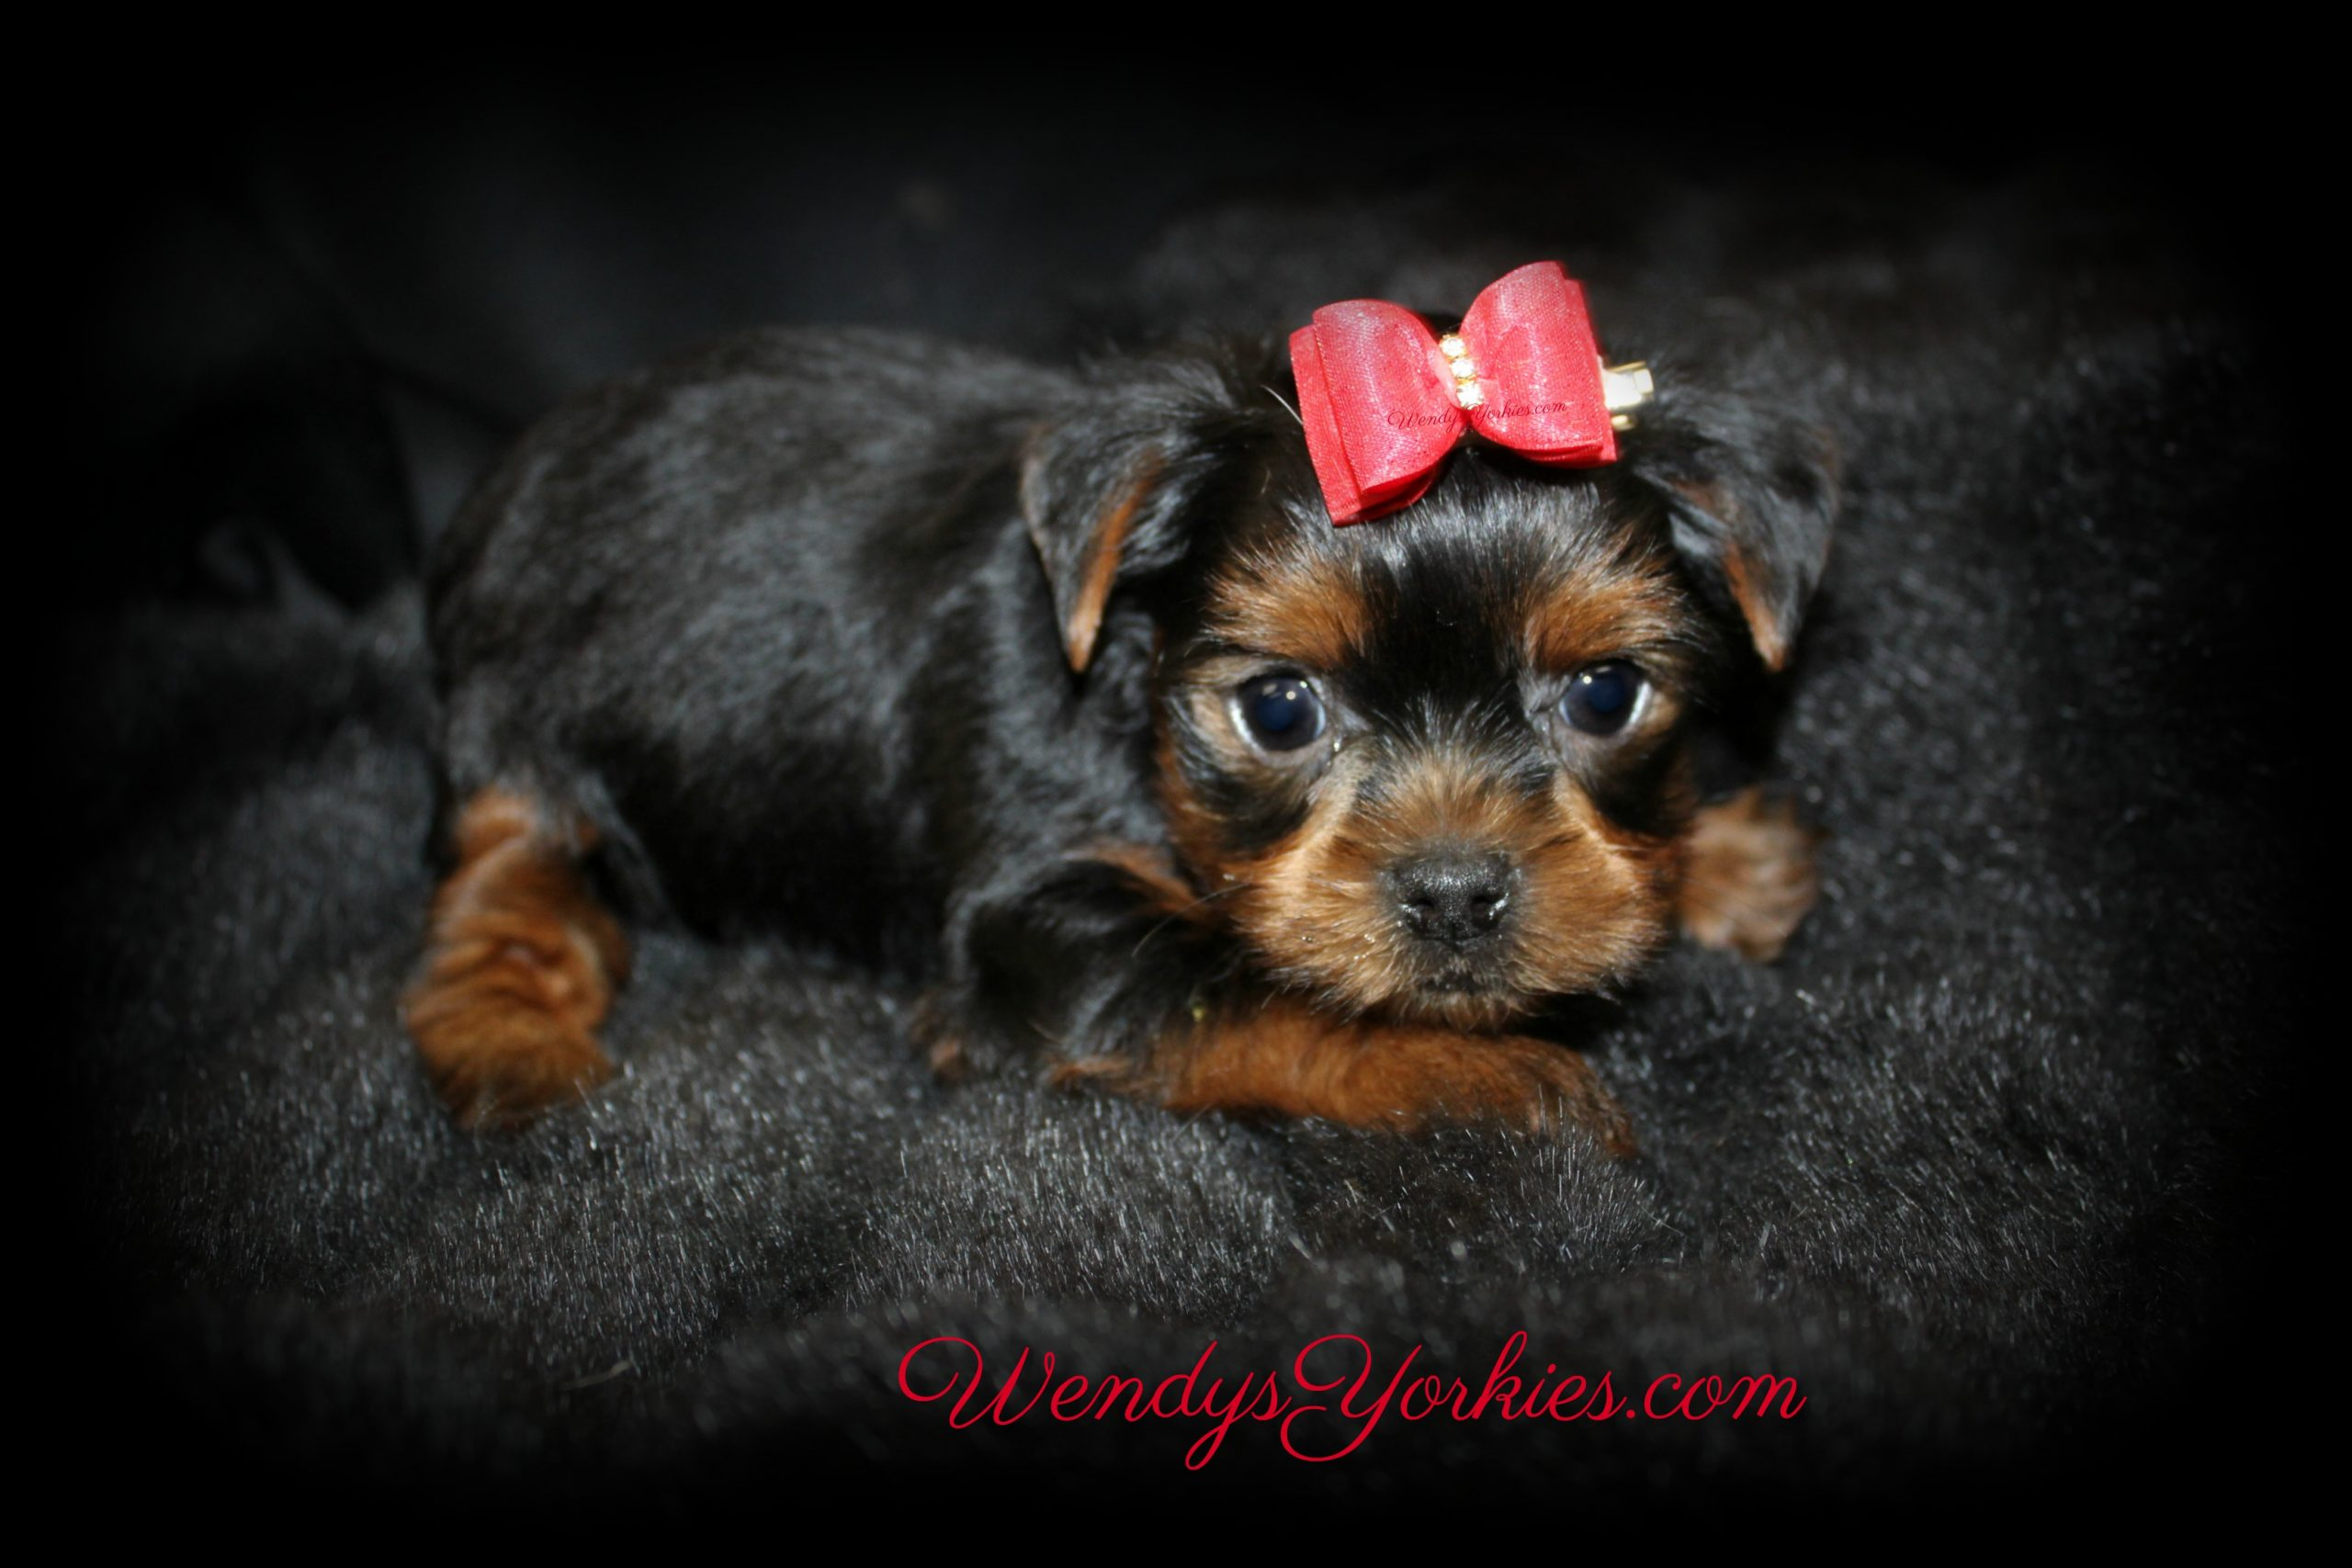 Tiny Yorkie Puppy for sale, Male YOrkie puppy for sale, WendysYorkies.com